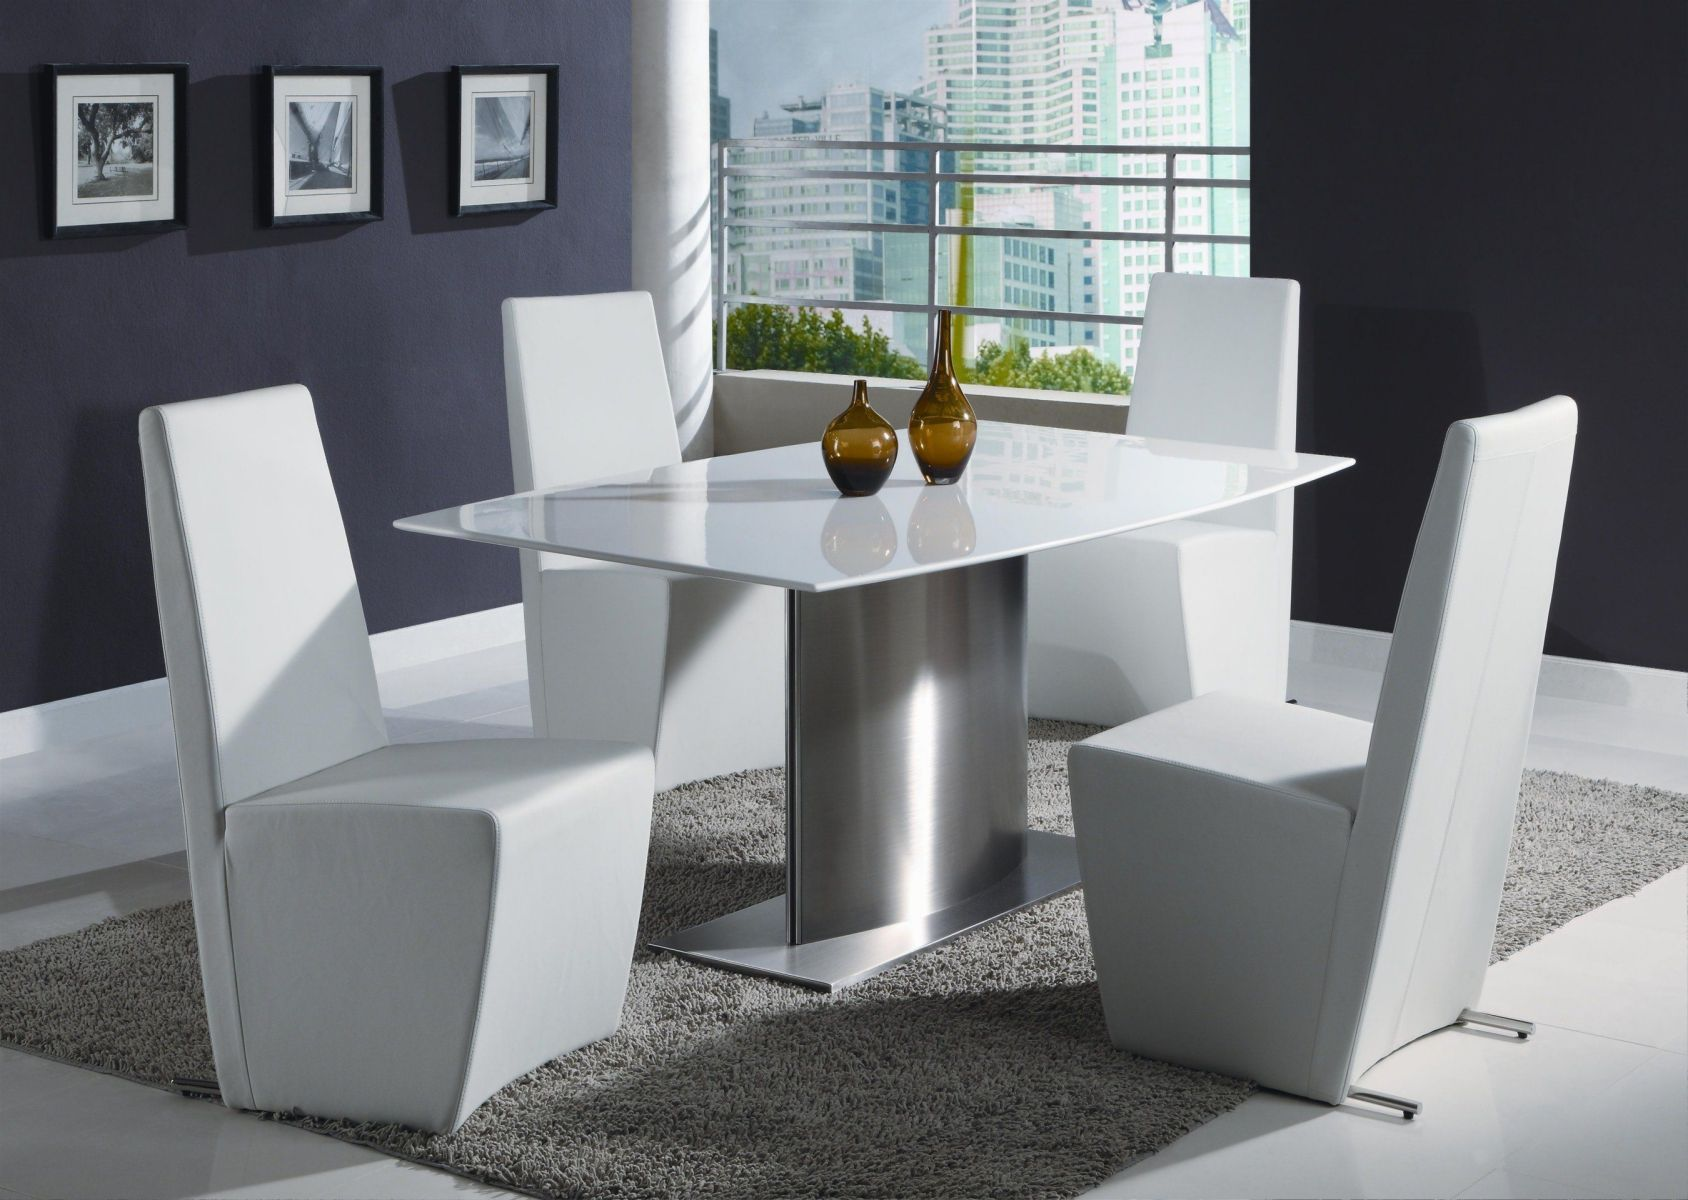 Chintaly Dinette Set  Price Upon RequestCall (631) 742-1351 for Best Price Guarantee Call (631) 742-1351 for Best Price Guarantee